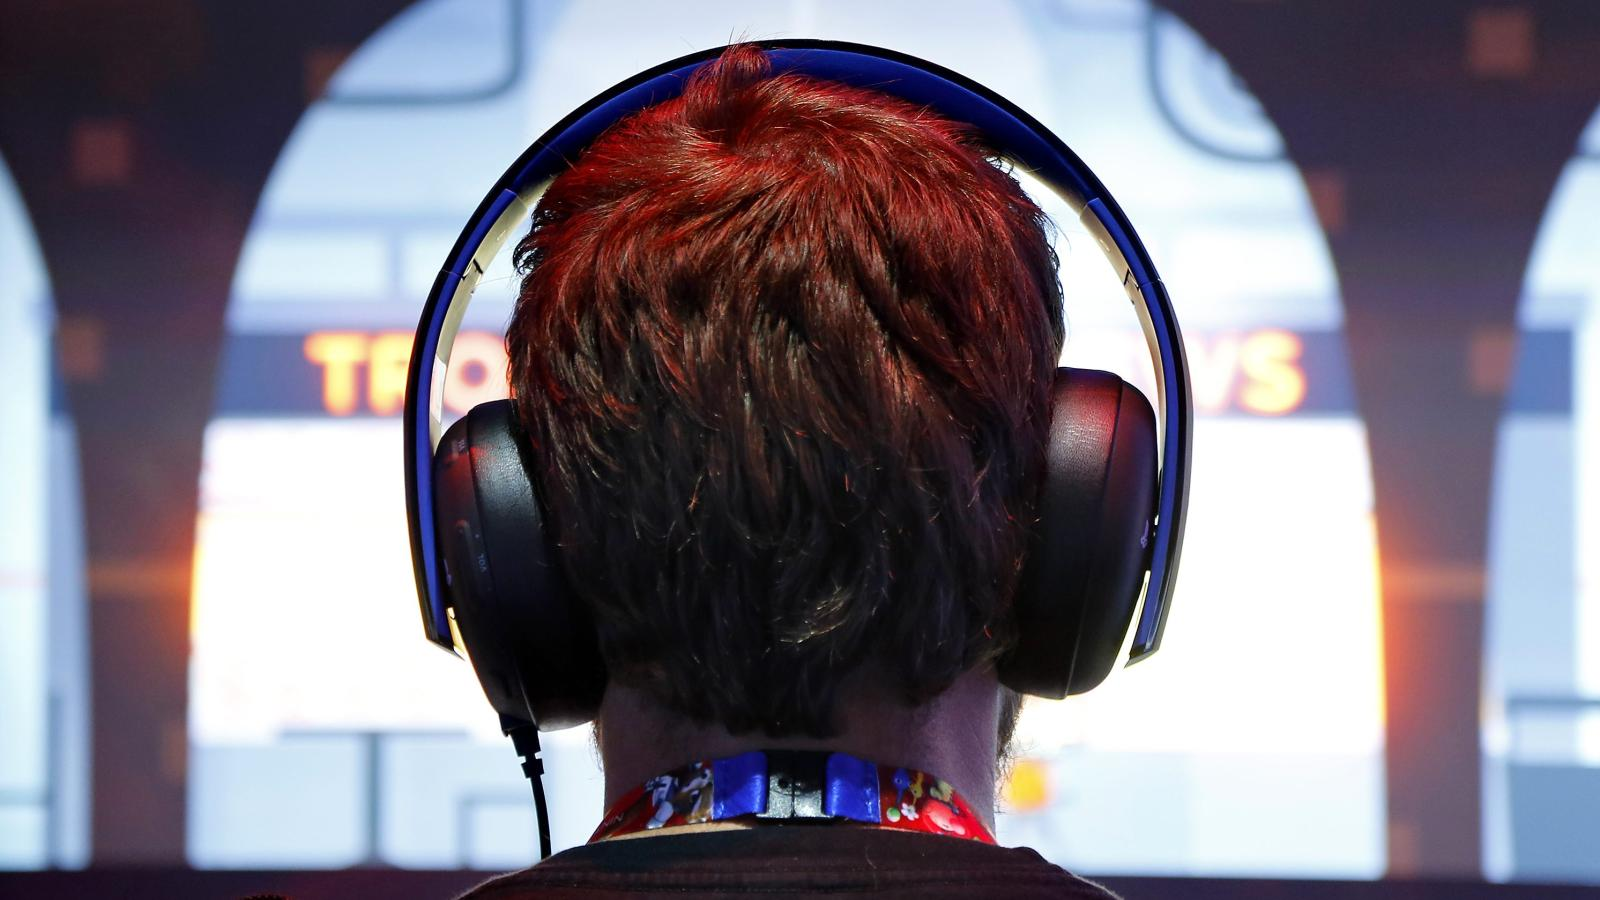 How to stop illegal music downloads? Threaten people with